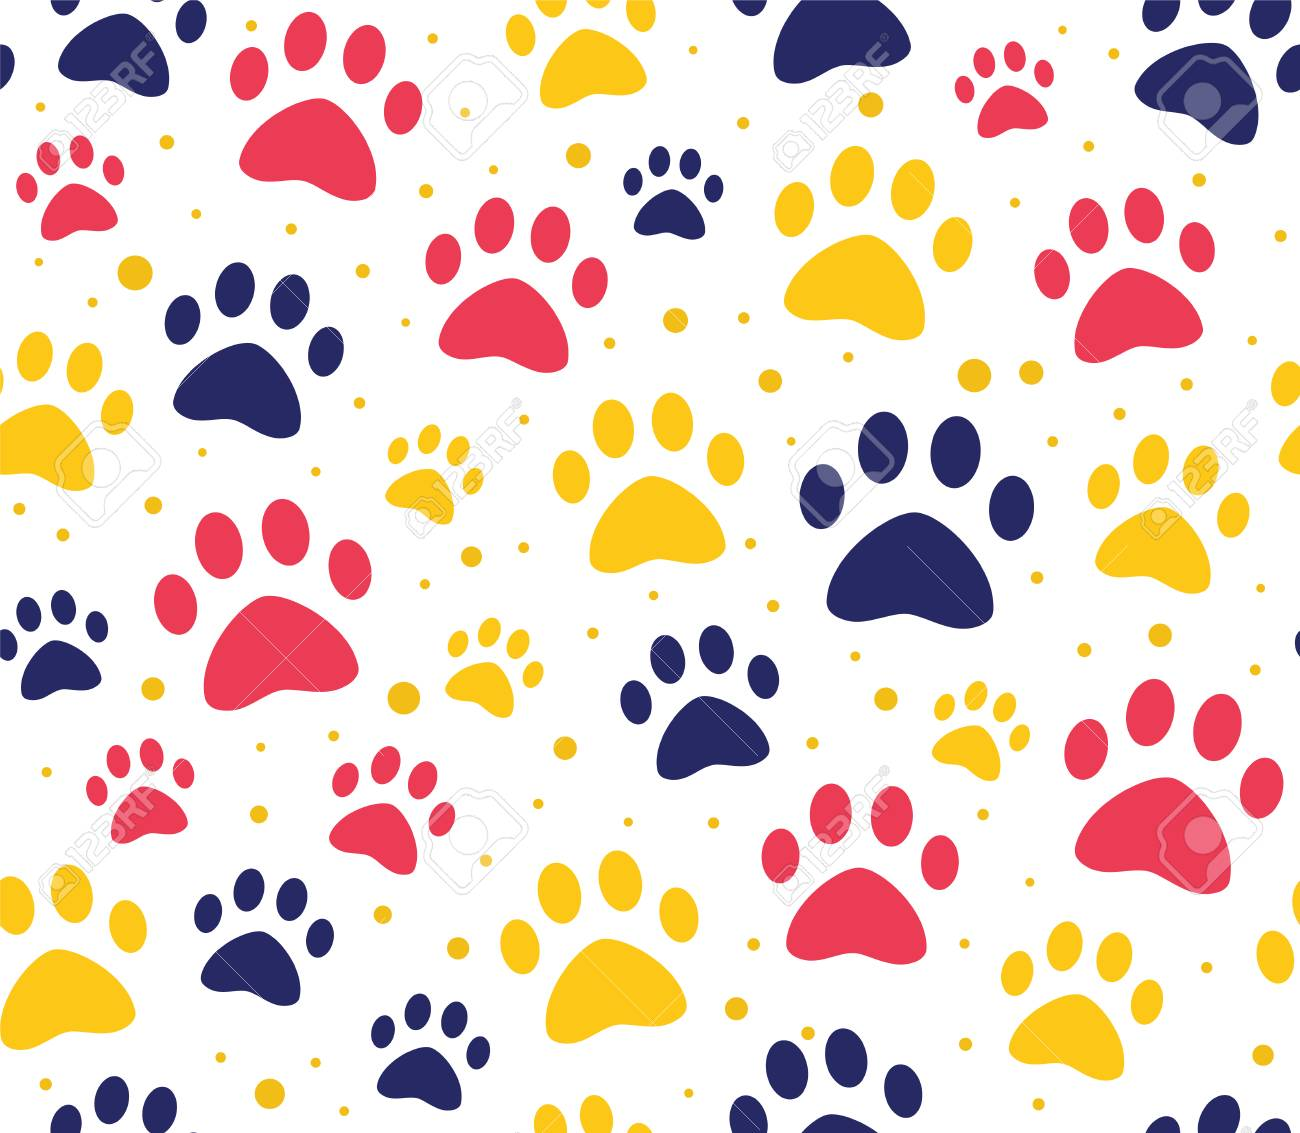 Cat Or Dog Paw Seamless Patterns Backgrounds For Pet Shop 1300x1133